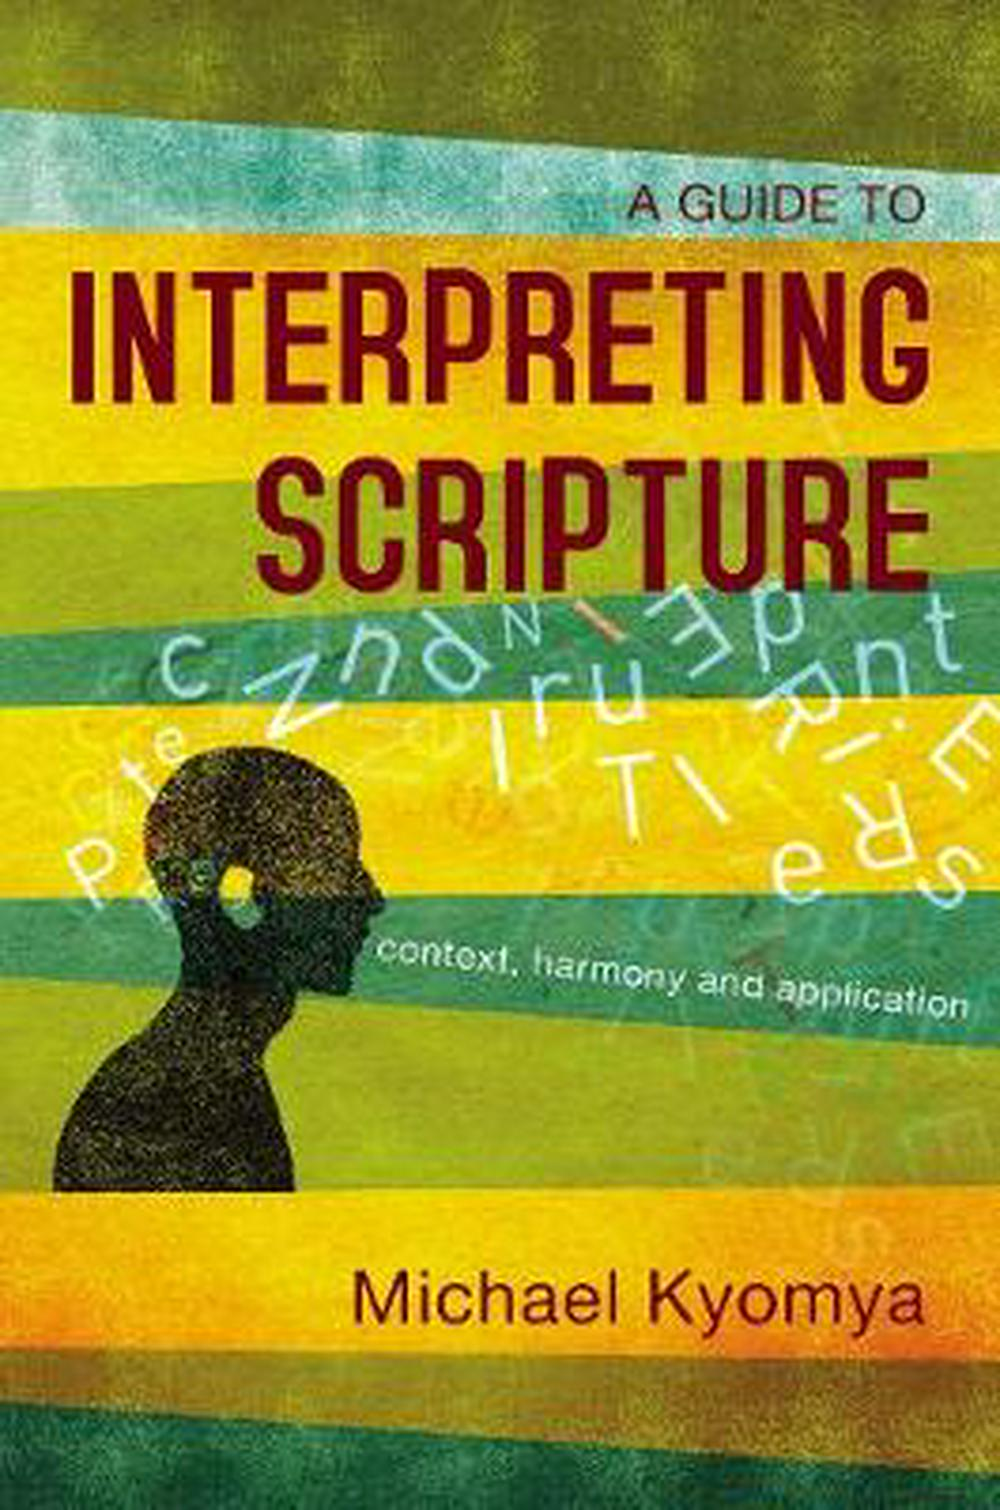 A Guide to Interpreting Scripture: Context, Harmony, and Application by Michael Kyomya, ISBN: 9780310107040